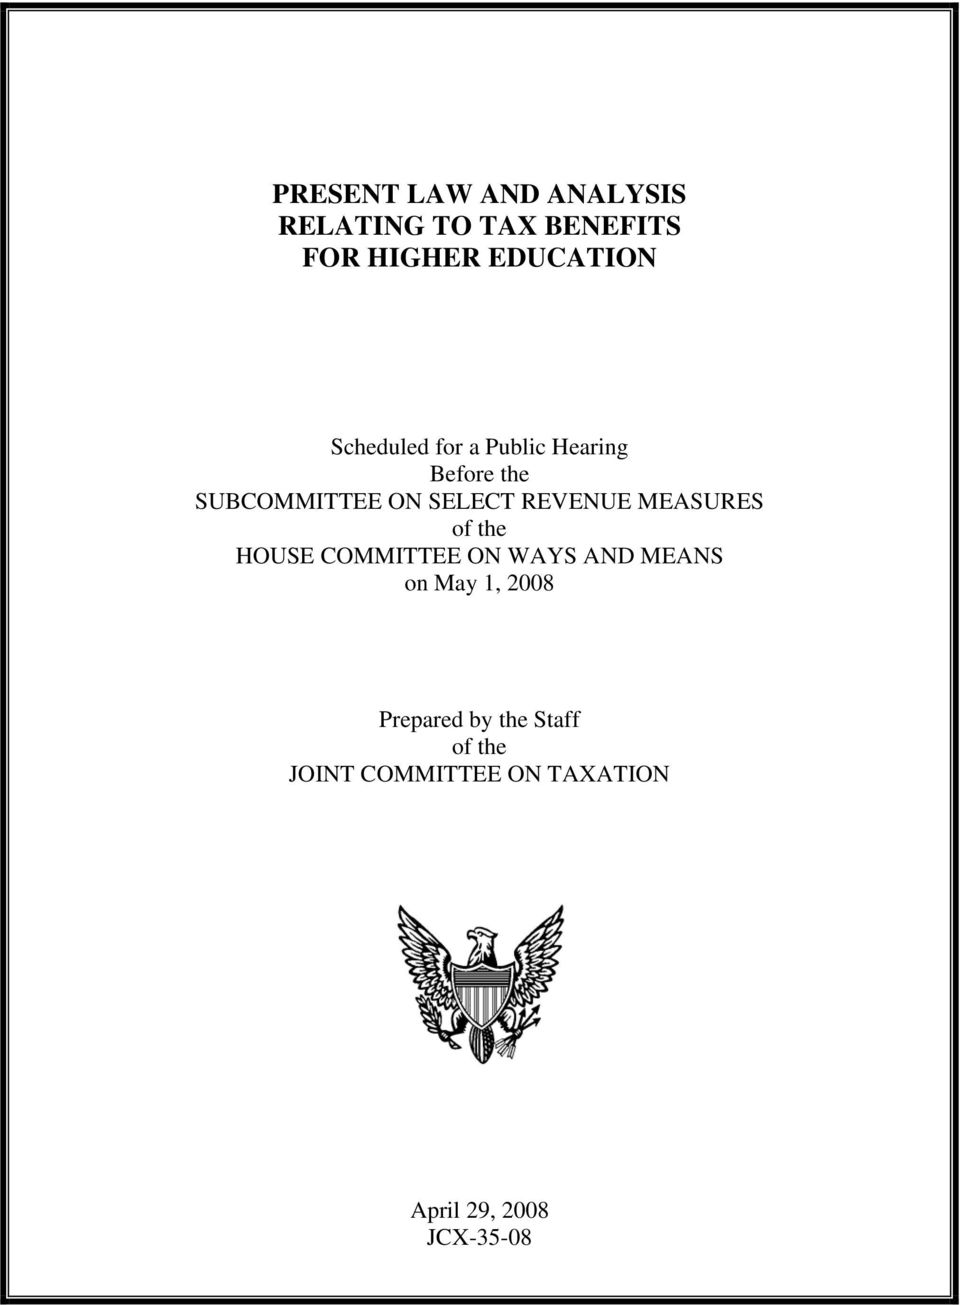 MEASURES of the HOUSE COMMITTEE ON WAYS AND MEANS on May 1, 2008